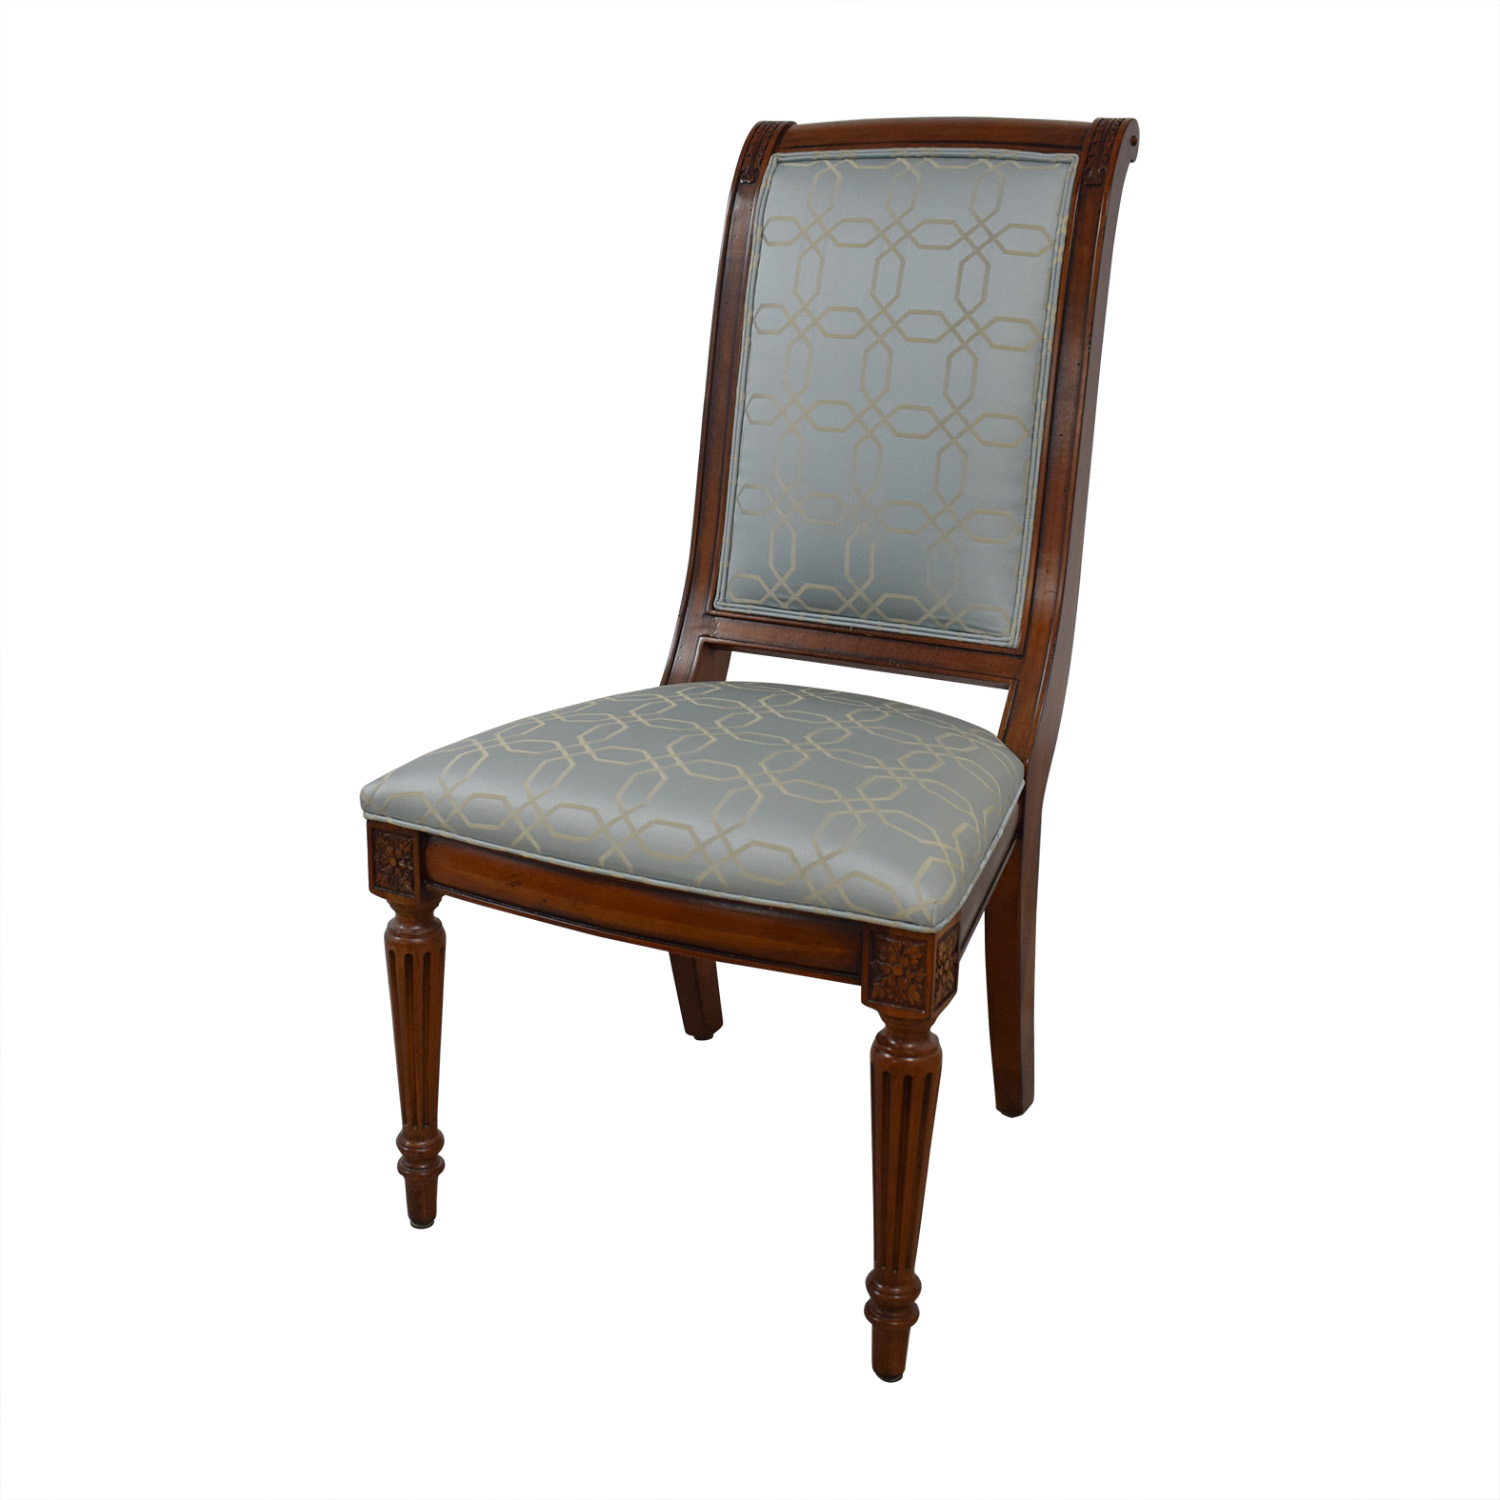 Ethan Allen Fabric Dinner Chairs sale